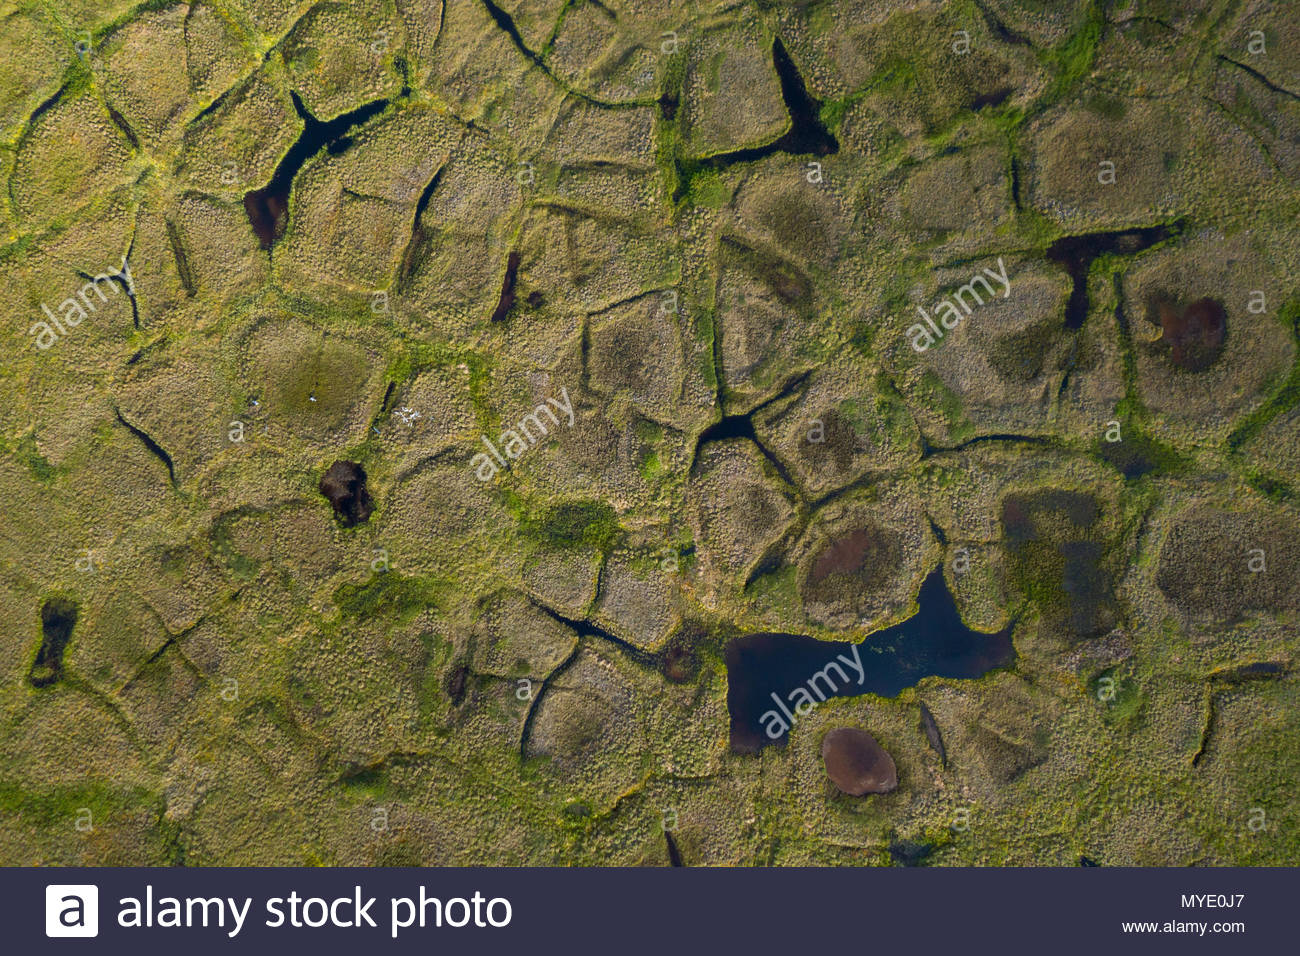 Natural polygonal shapes appear across the tundra landscape as a result of permafrost melt. - Stock Image